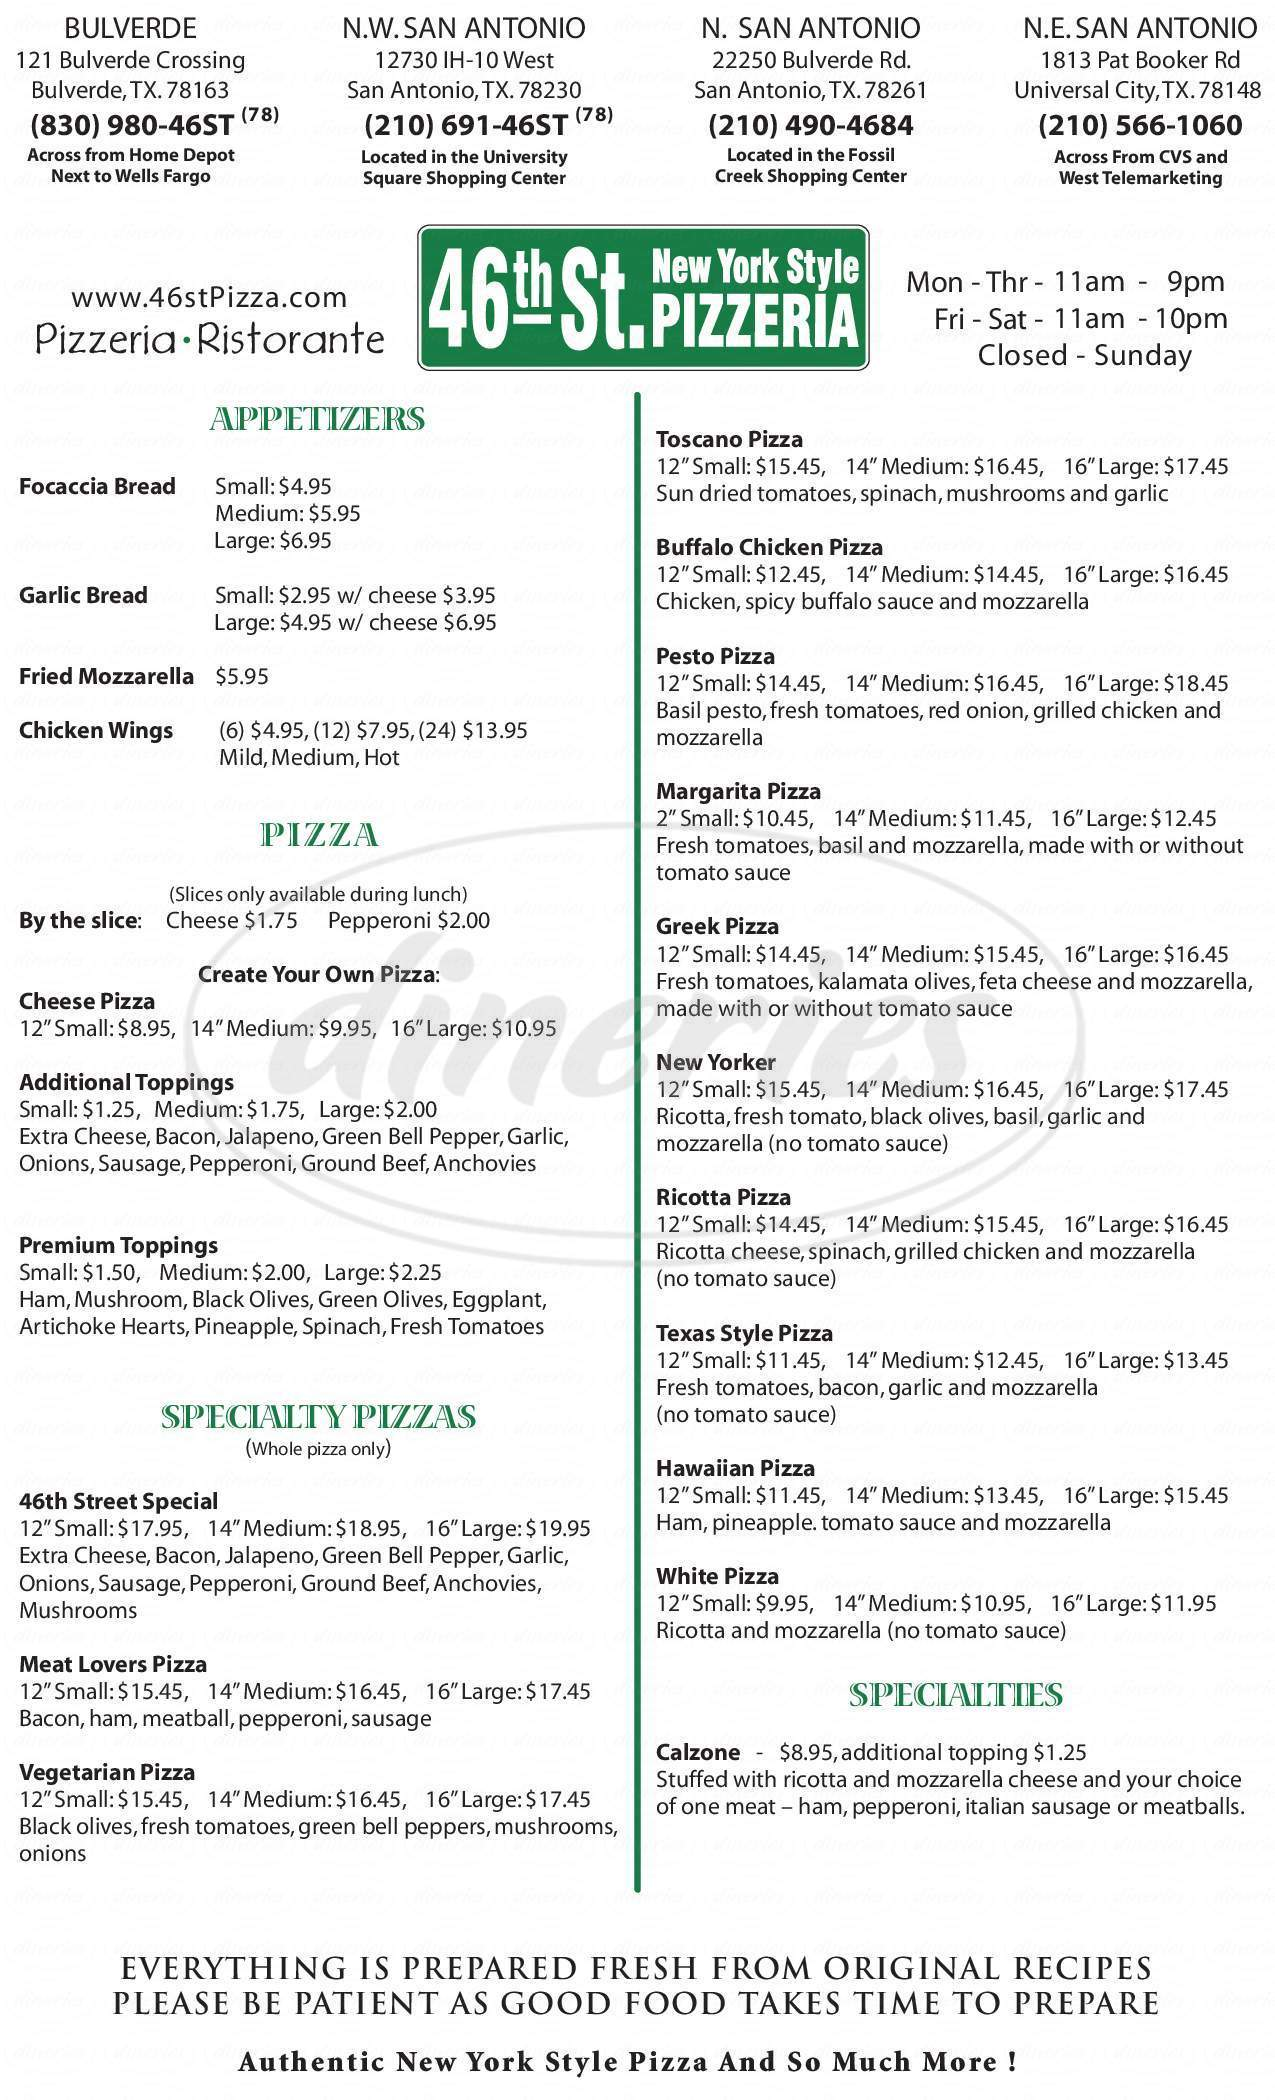 menu for 46th St. New York Style Pizzeria